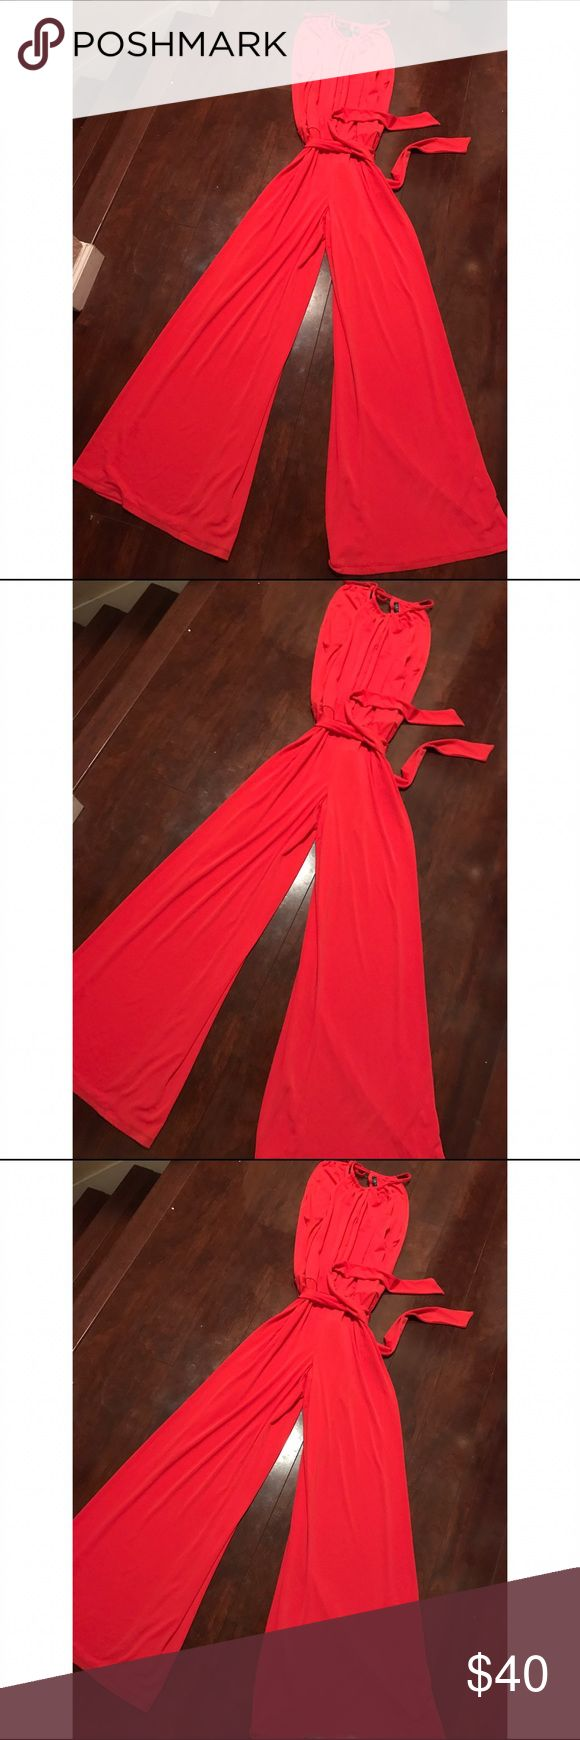 Ralph Lauren Coral JumpSuit💛💛 Gorgeous Coral JumpSuit By Ralph Lauren. Sleeveless with tie waist and wide legs for the Chic Fashionable Look!! NWT Size Large Ralph Lauren Pants Jumpsuits & Rompers